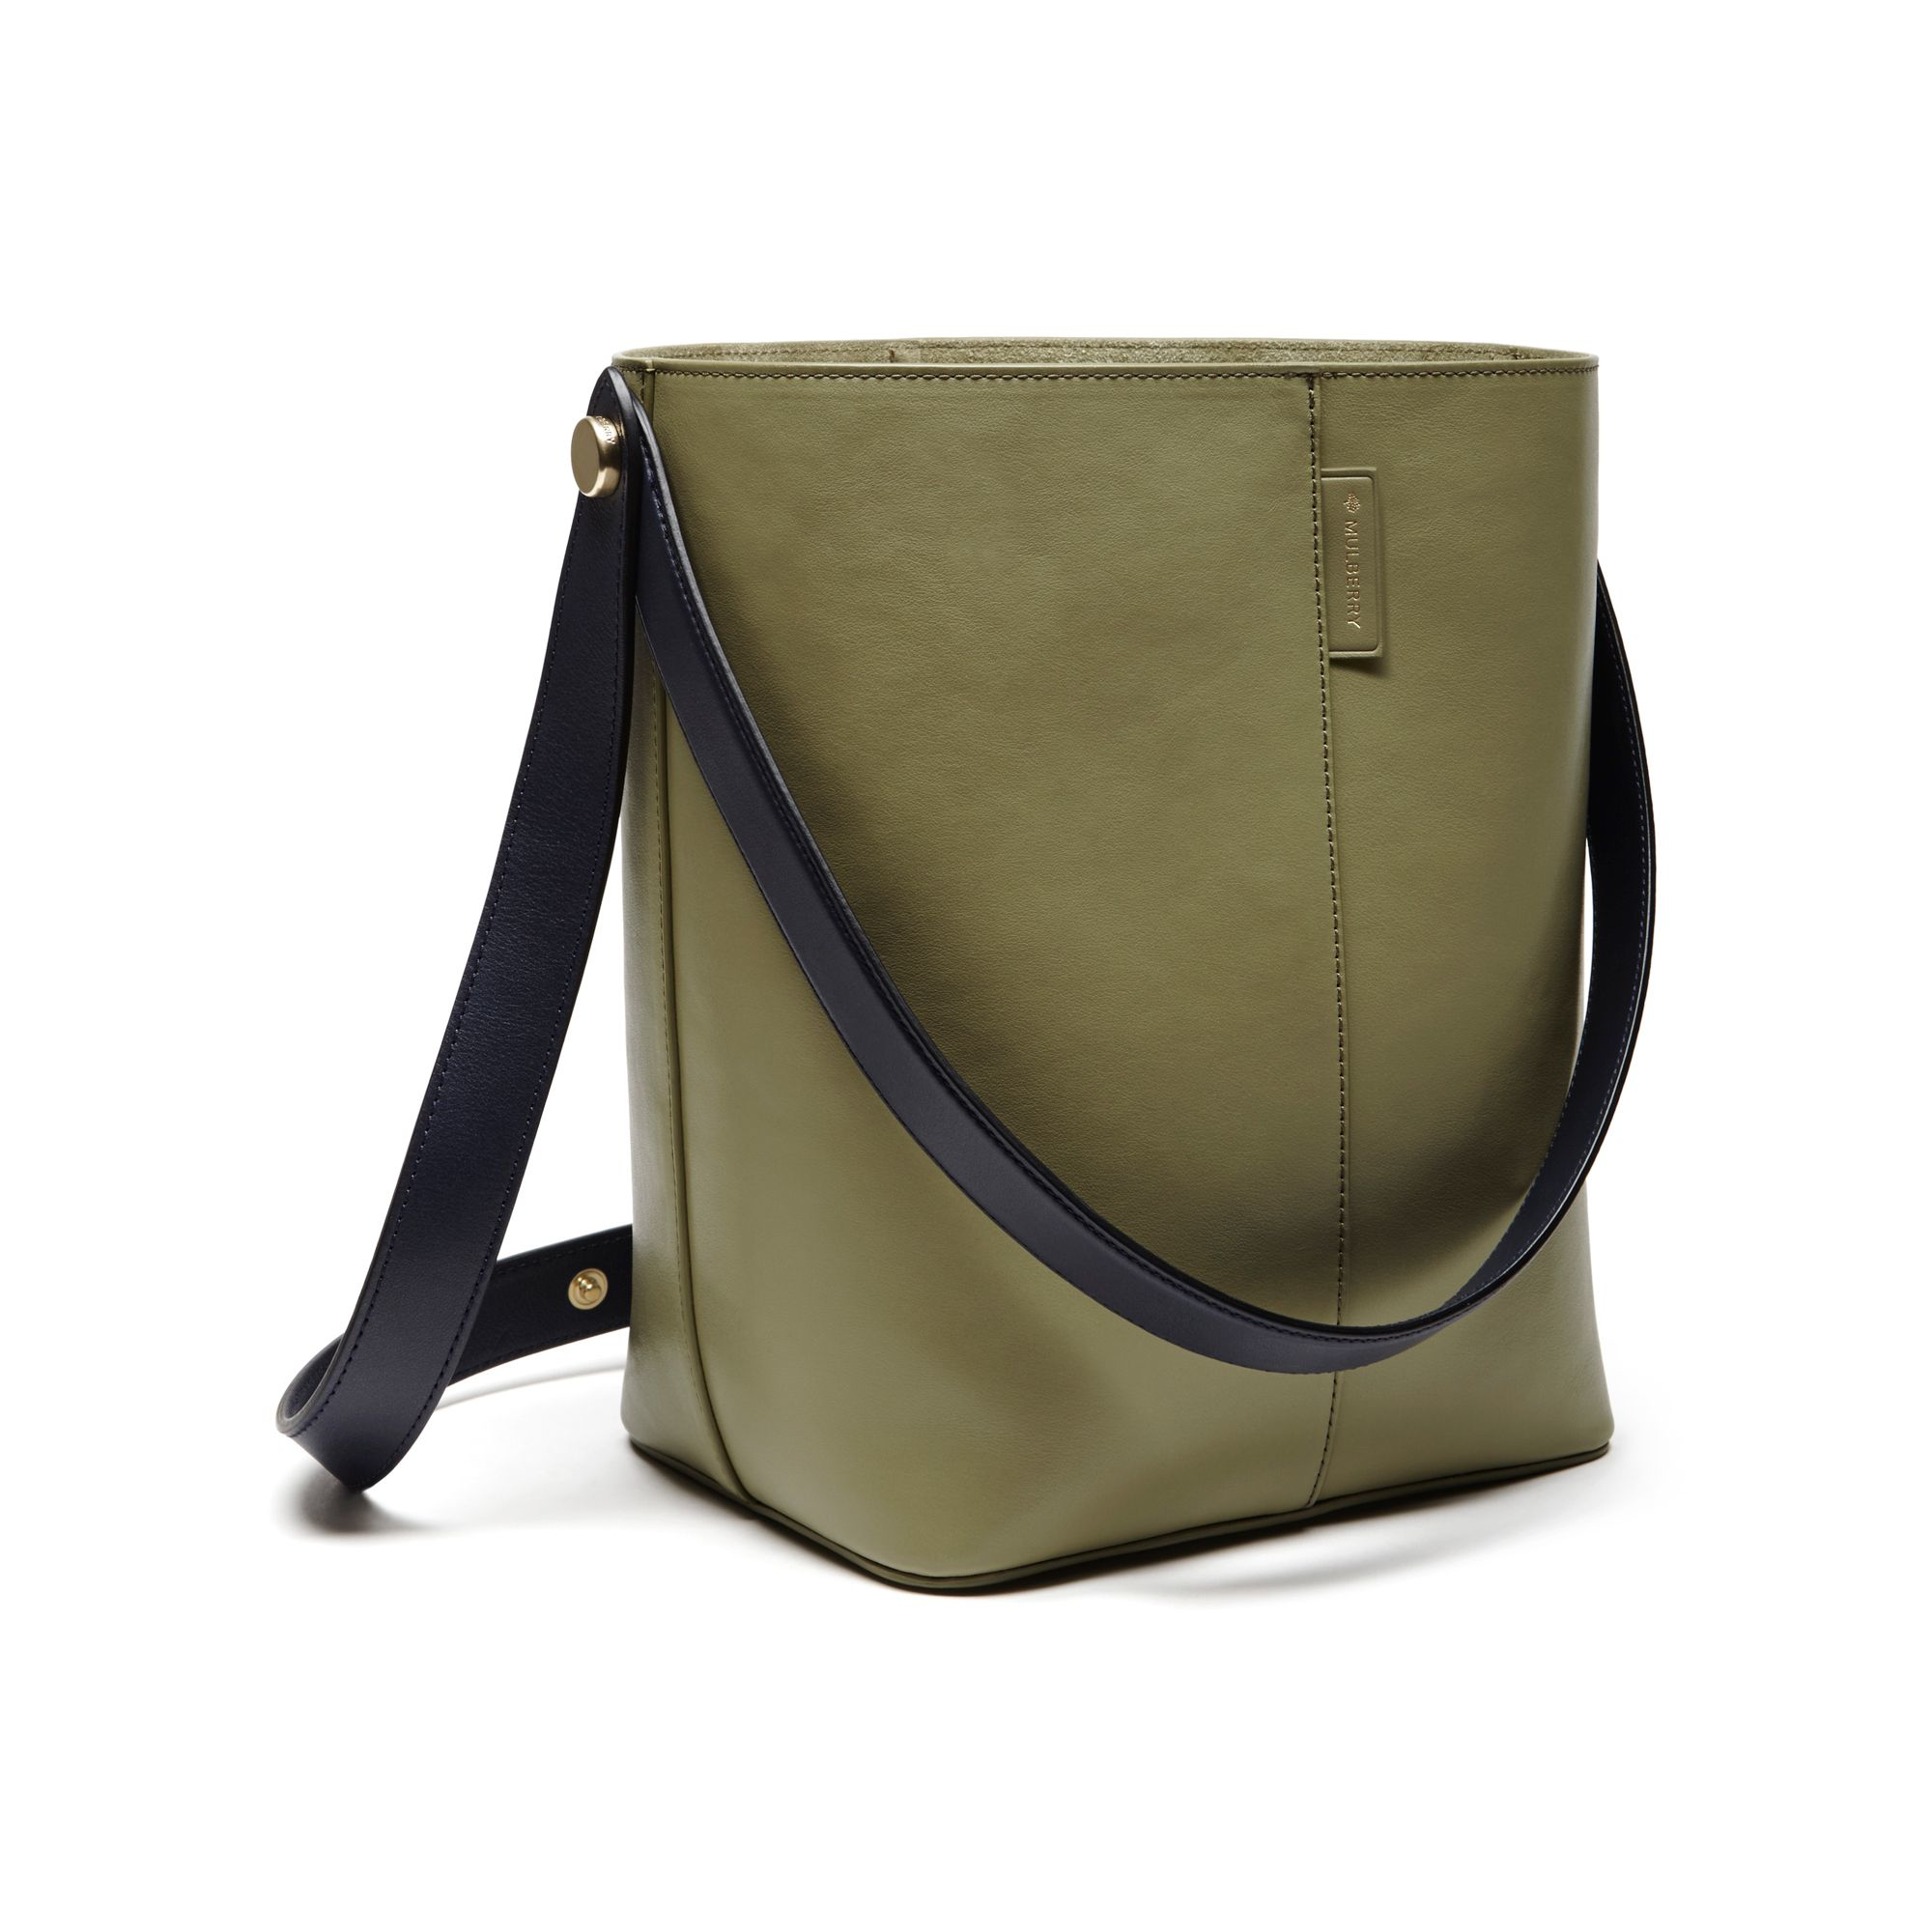 fe4e5b025334 clearance mulberry small zip bayswater classic leather tote 58434 23f5a  best  price mulberry small kite leather tote in green lyst 9d061 45305